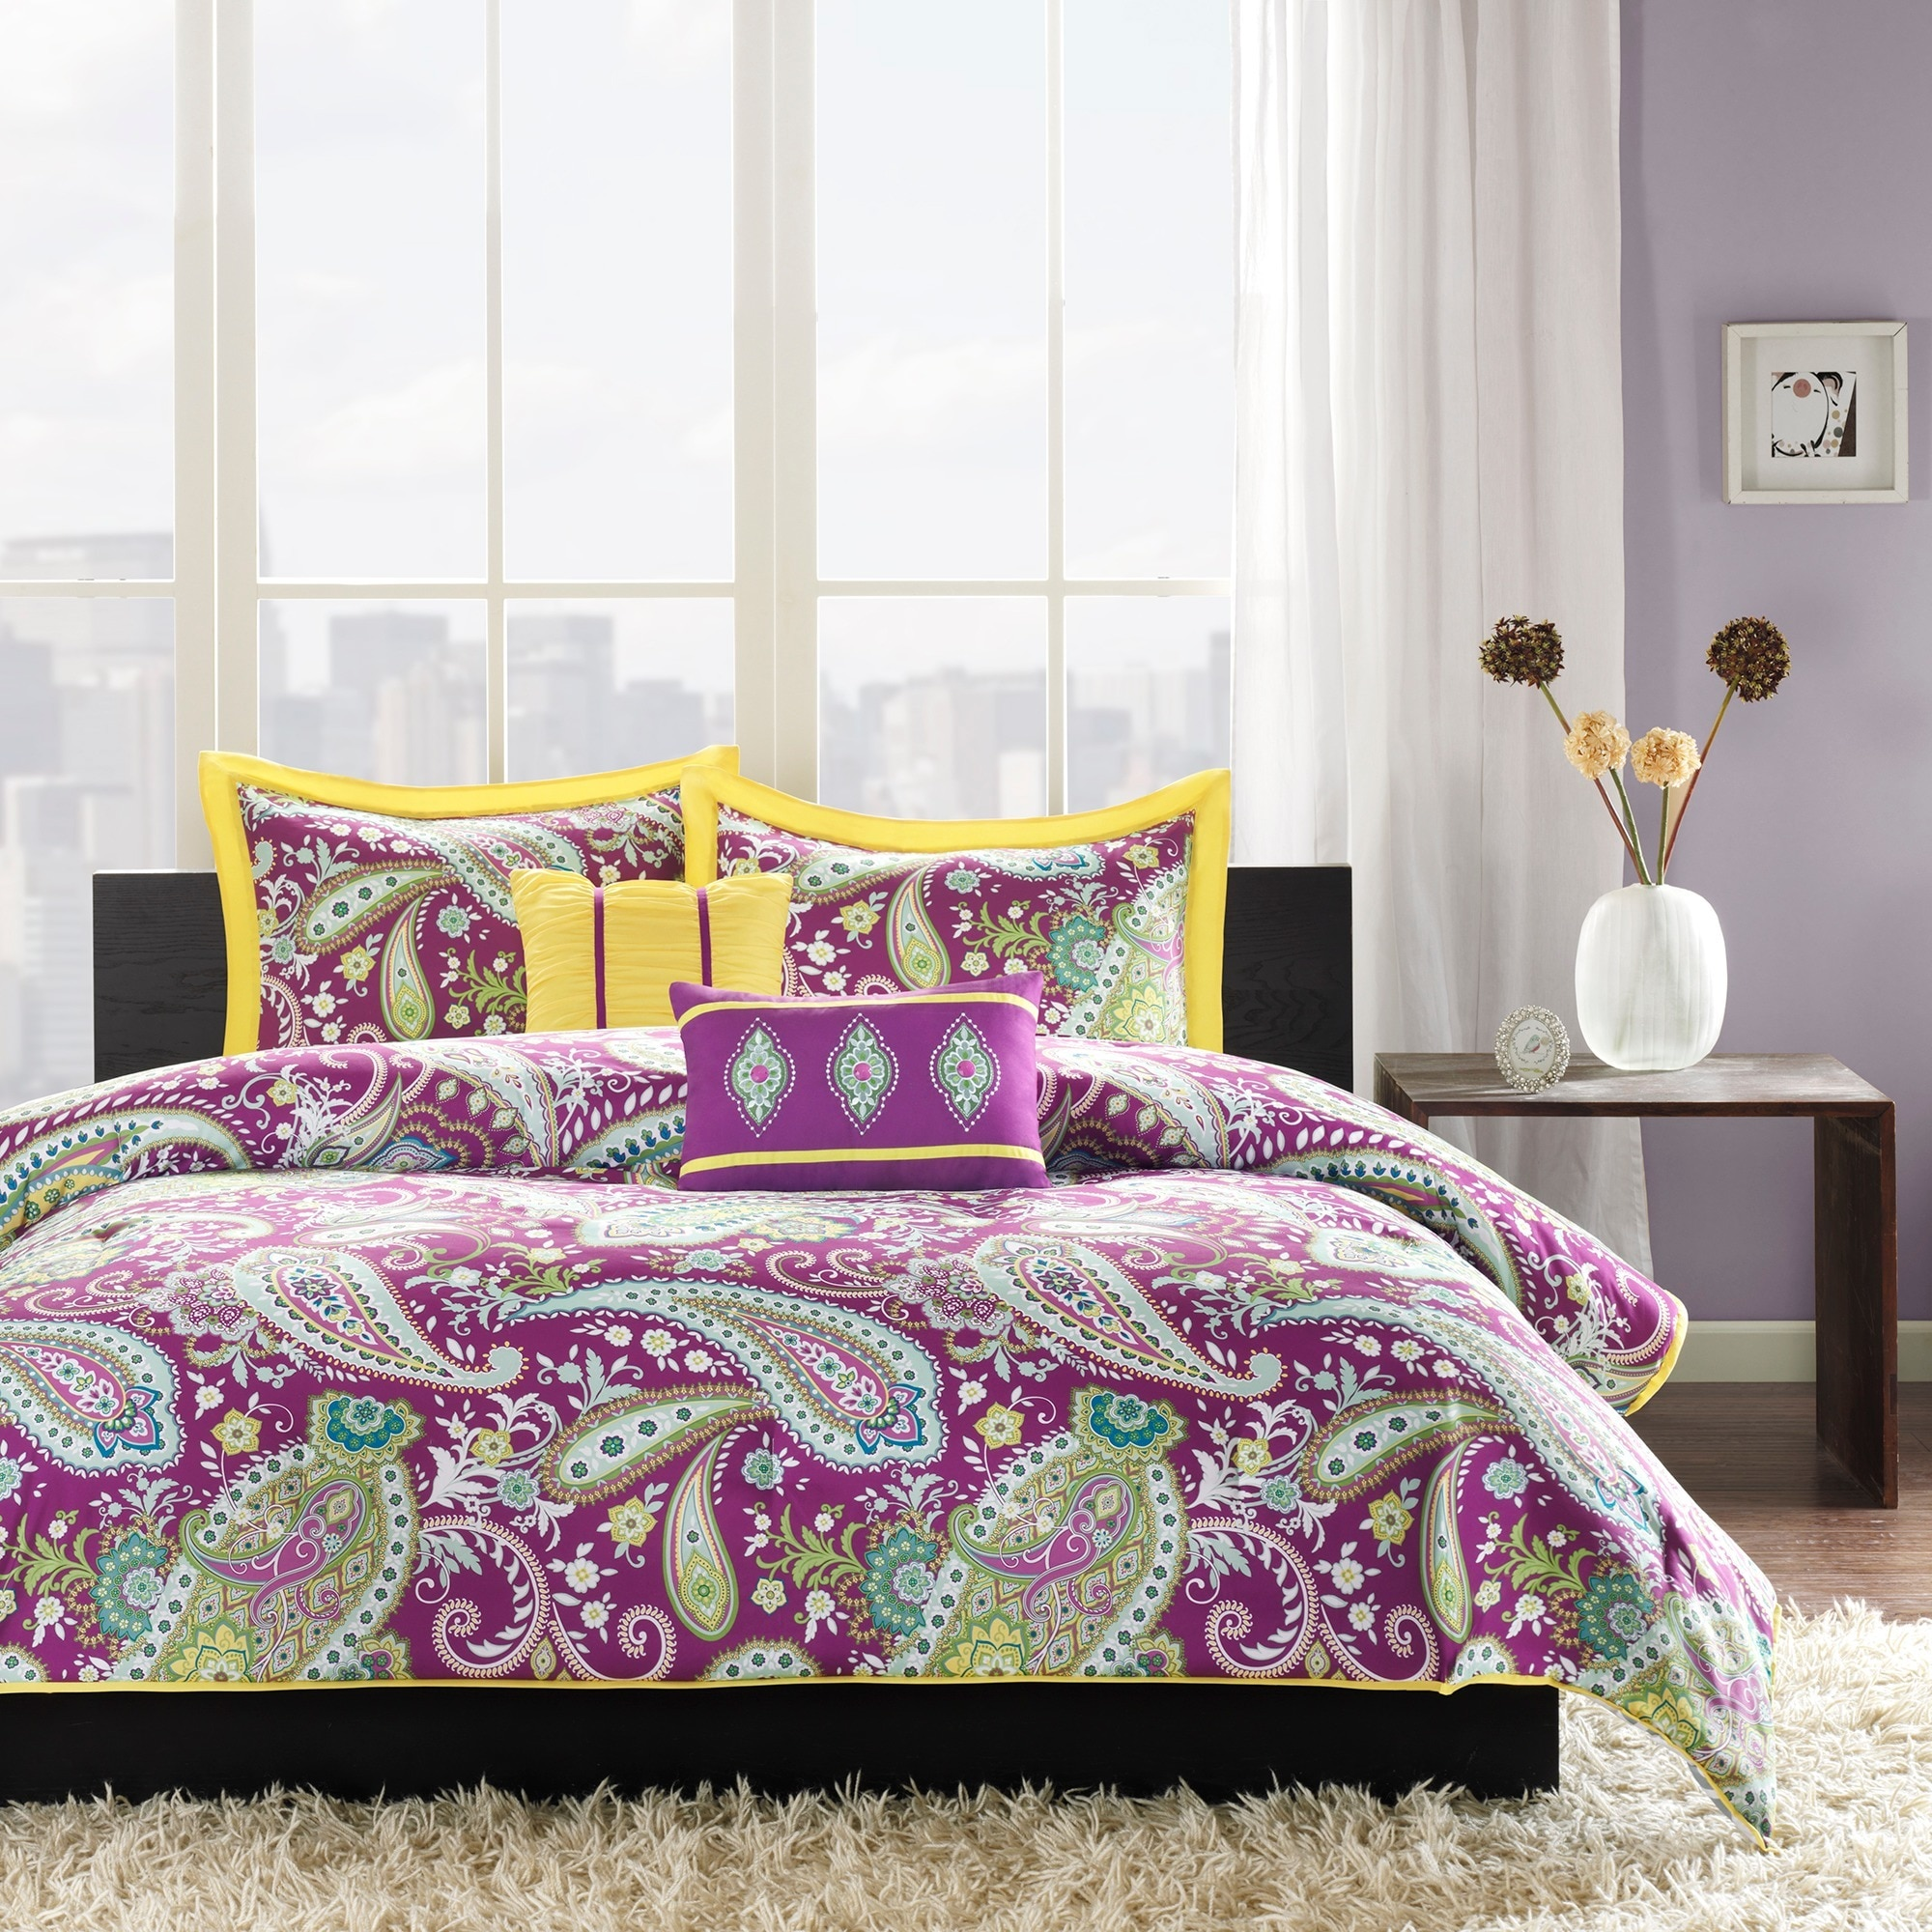 xfile and sheet pics ideas bedroom cotton trend plum sets set purple fascinating cute gray stunning style comforter of lavender